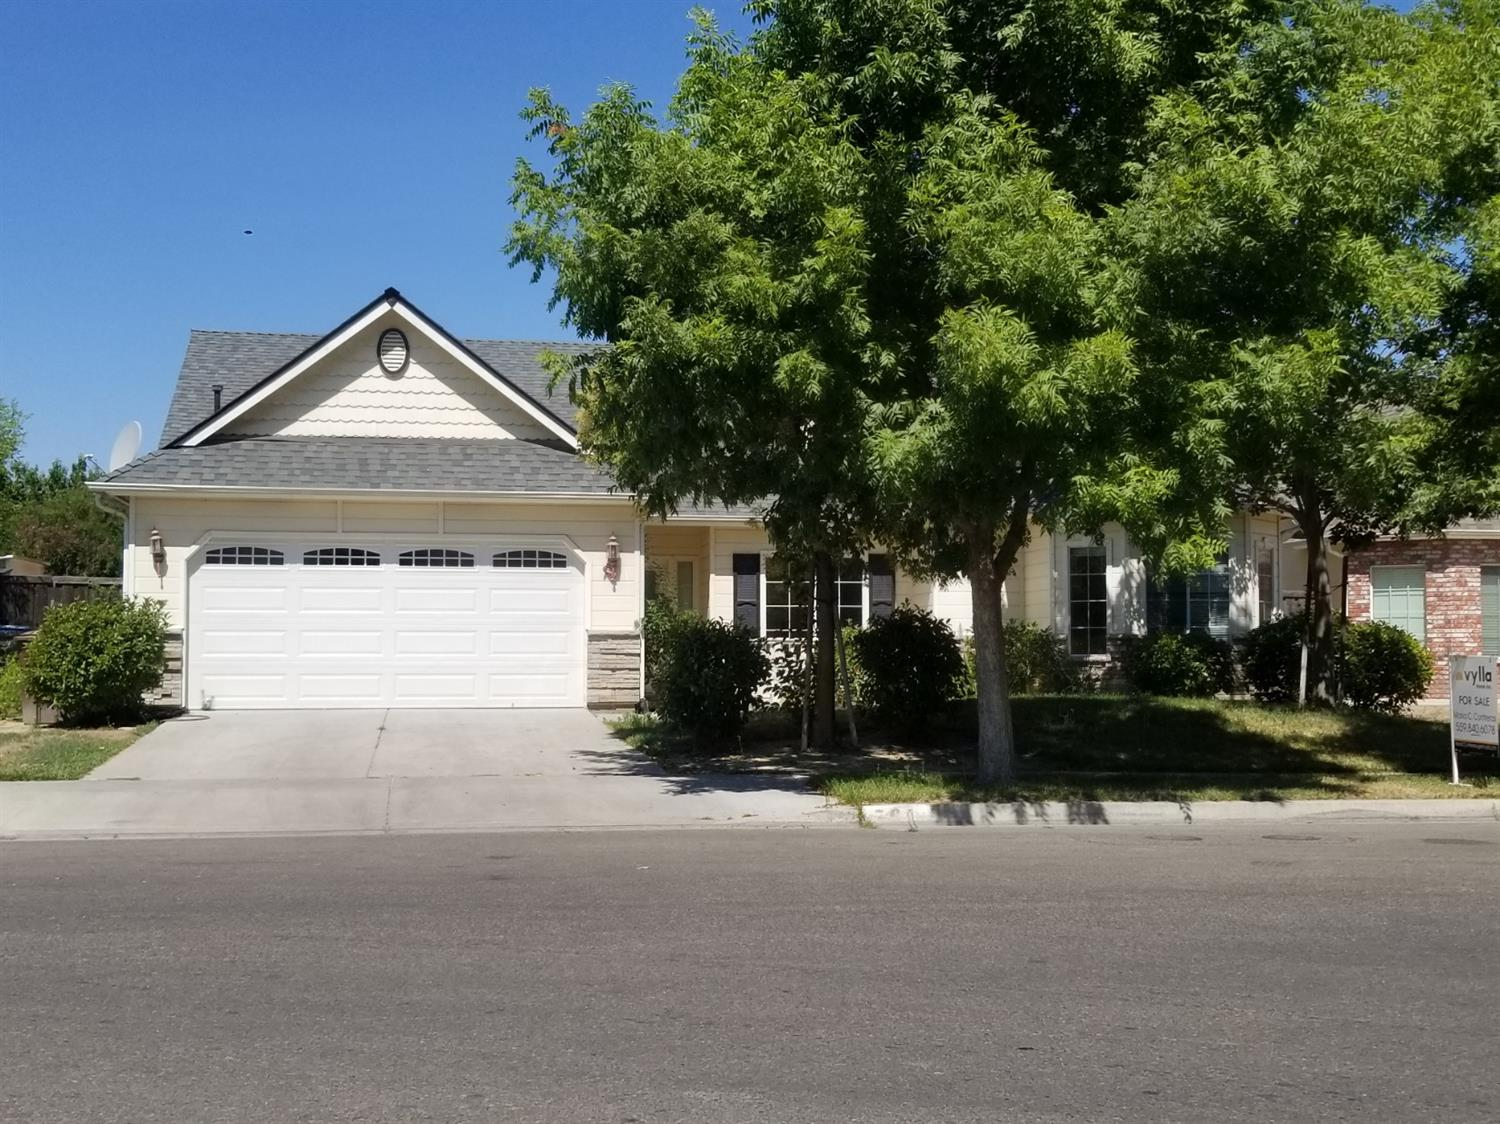 Great location the property include 3 bedrooms 2 baths, living area 1684 sq ft. Seller is wanting to sell property so bring clients and make an offer